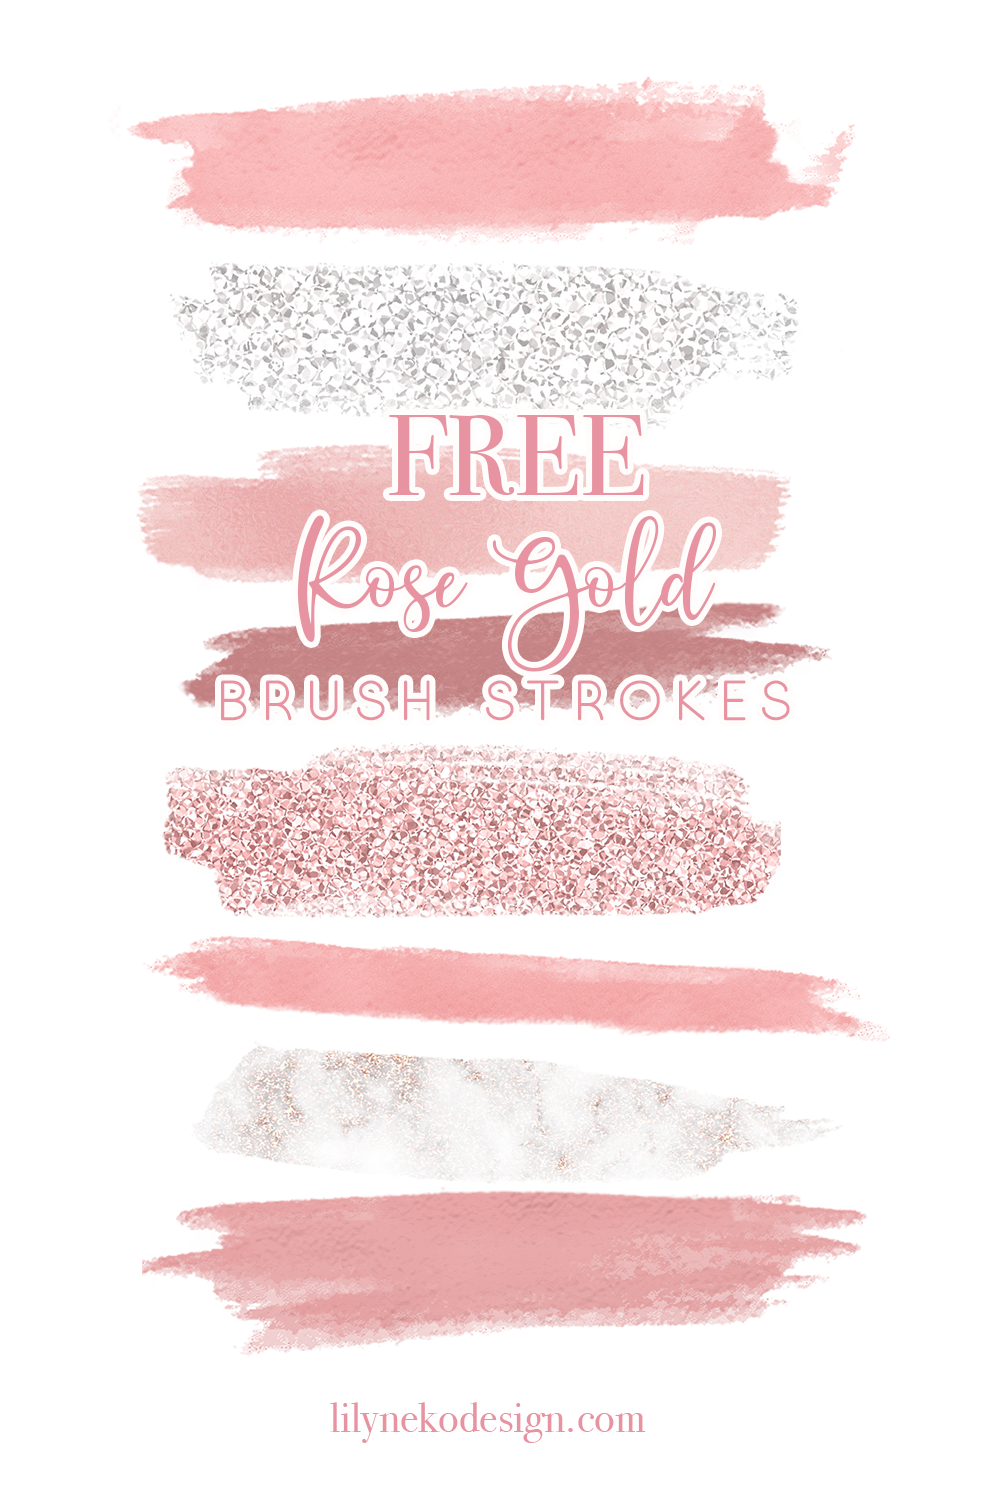 Free Rose Gold Brush Stroke Elements Lilynekodesignstudio Rose Gold Brushes Free Design Elements Planner Stickers